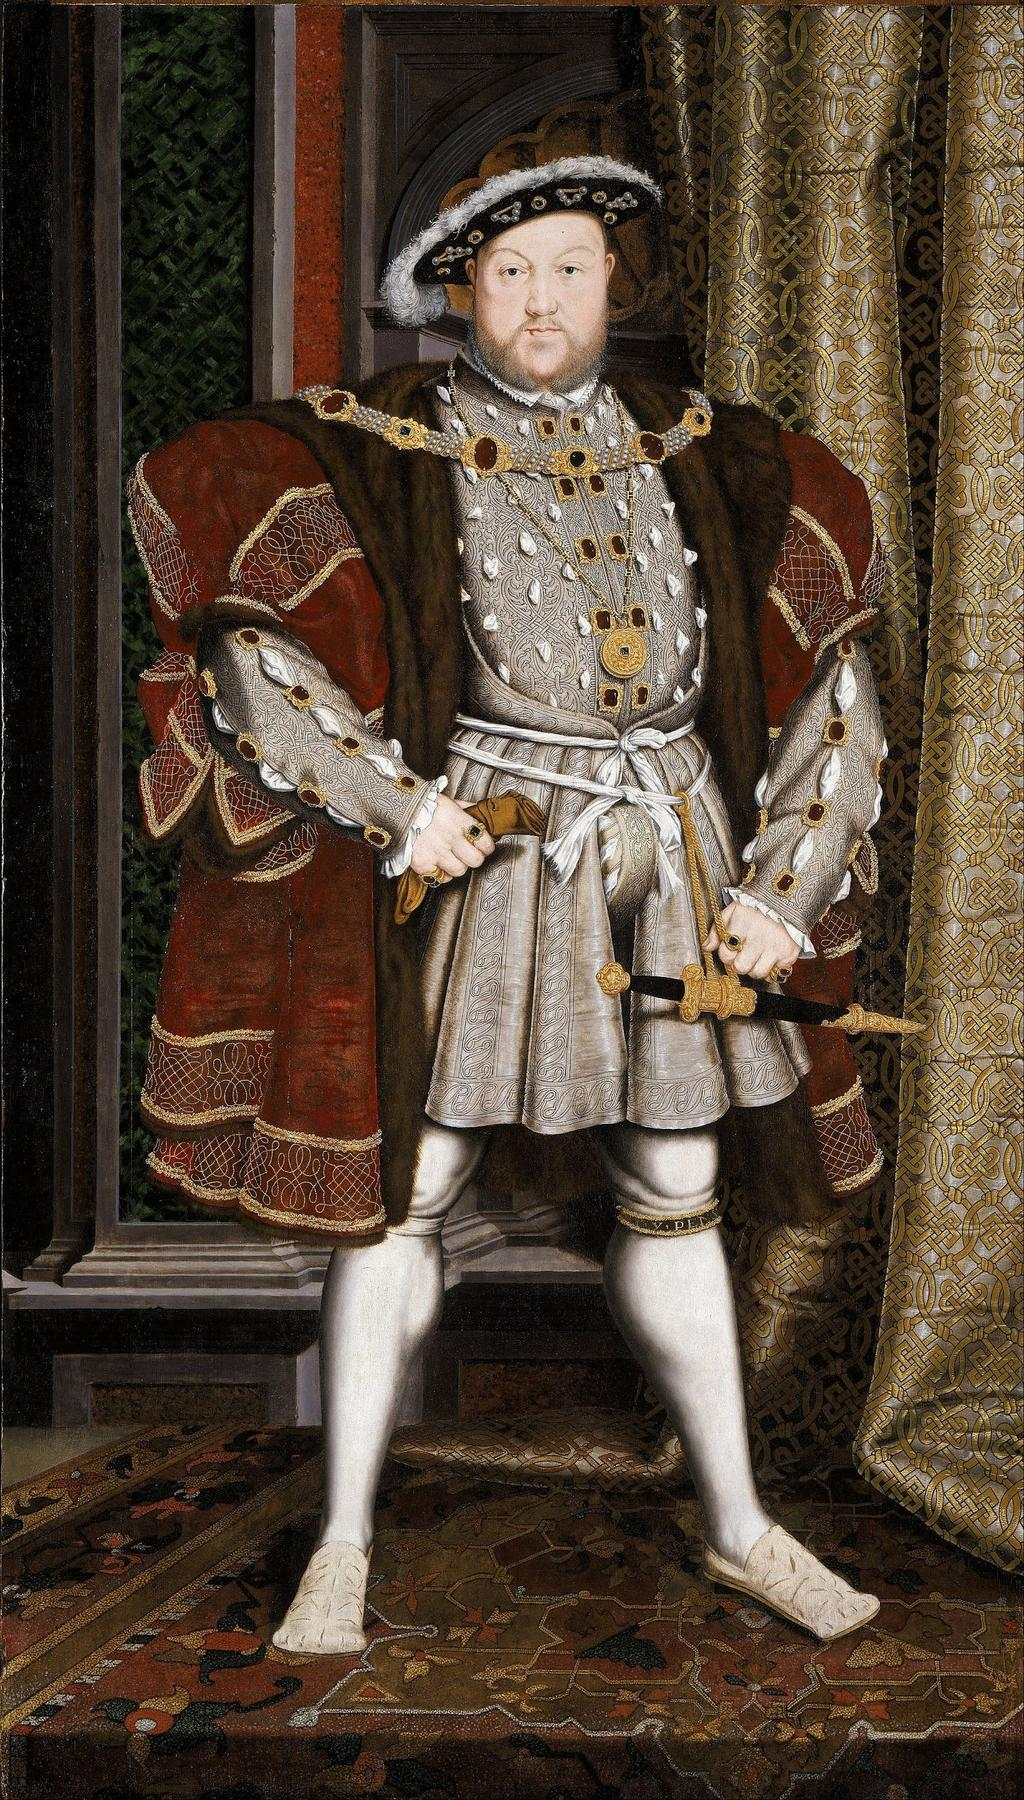 King Henry VIII - Leads England s Protestant Reformation - His reasons for breaking from the Catholic Church were